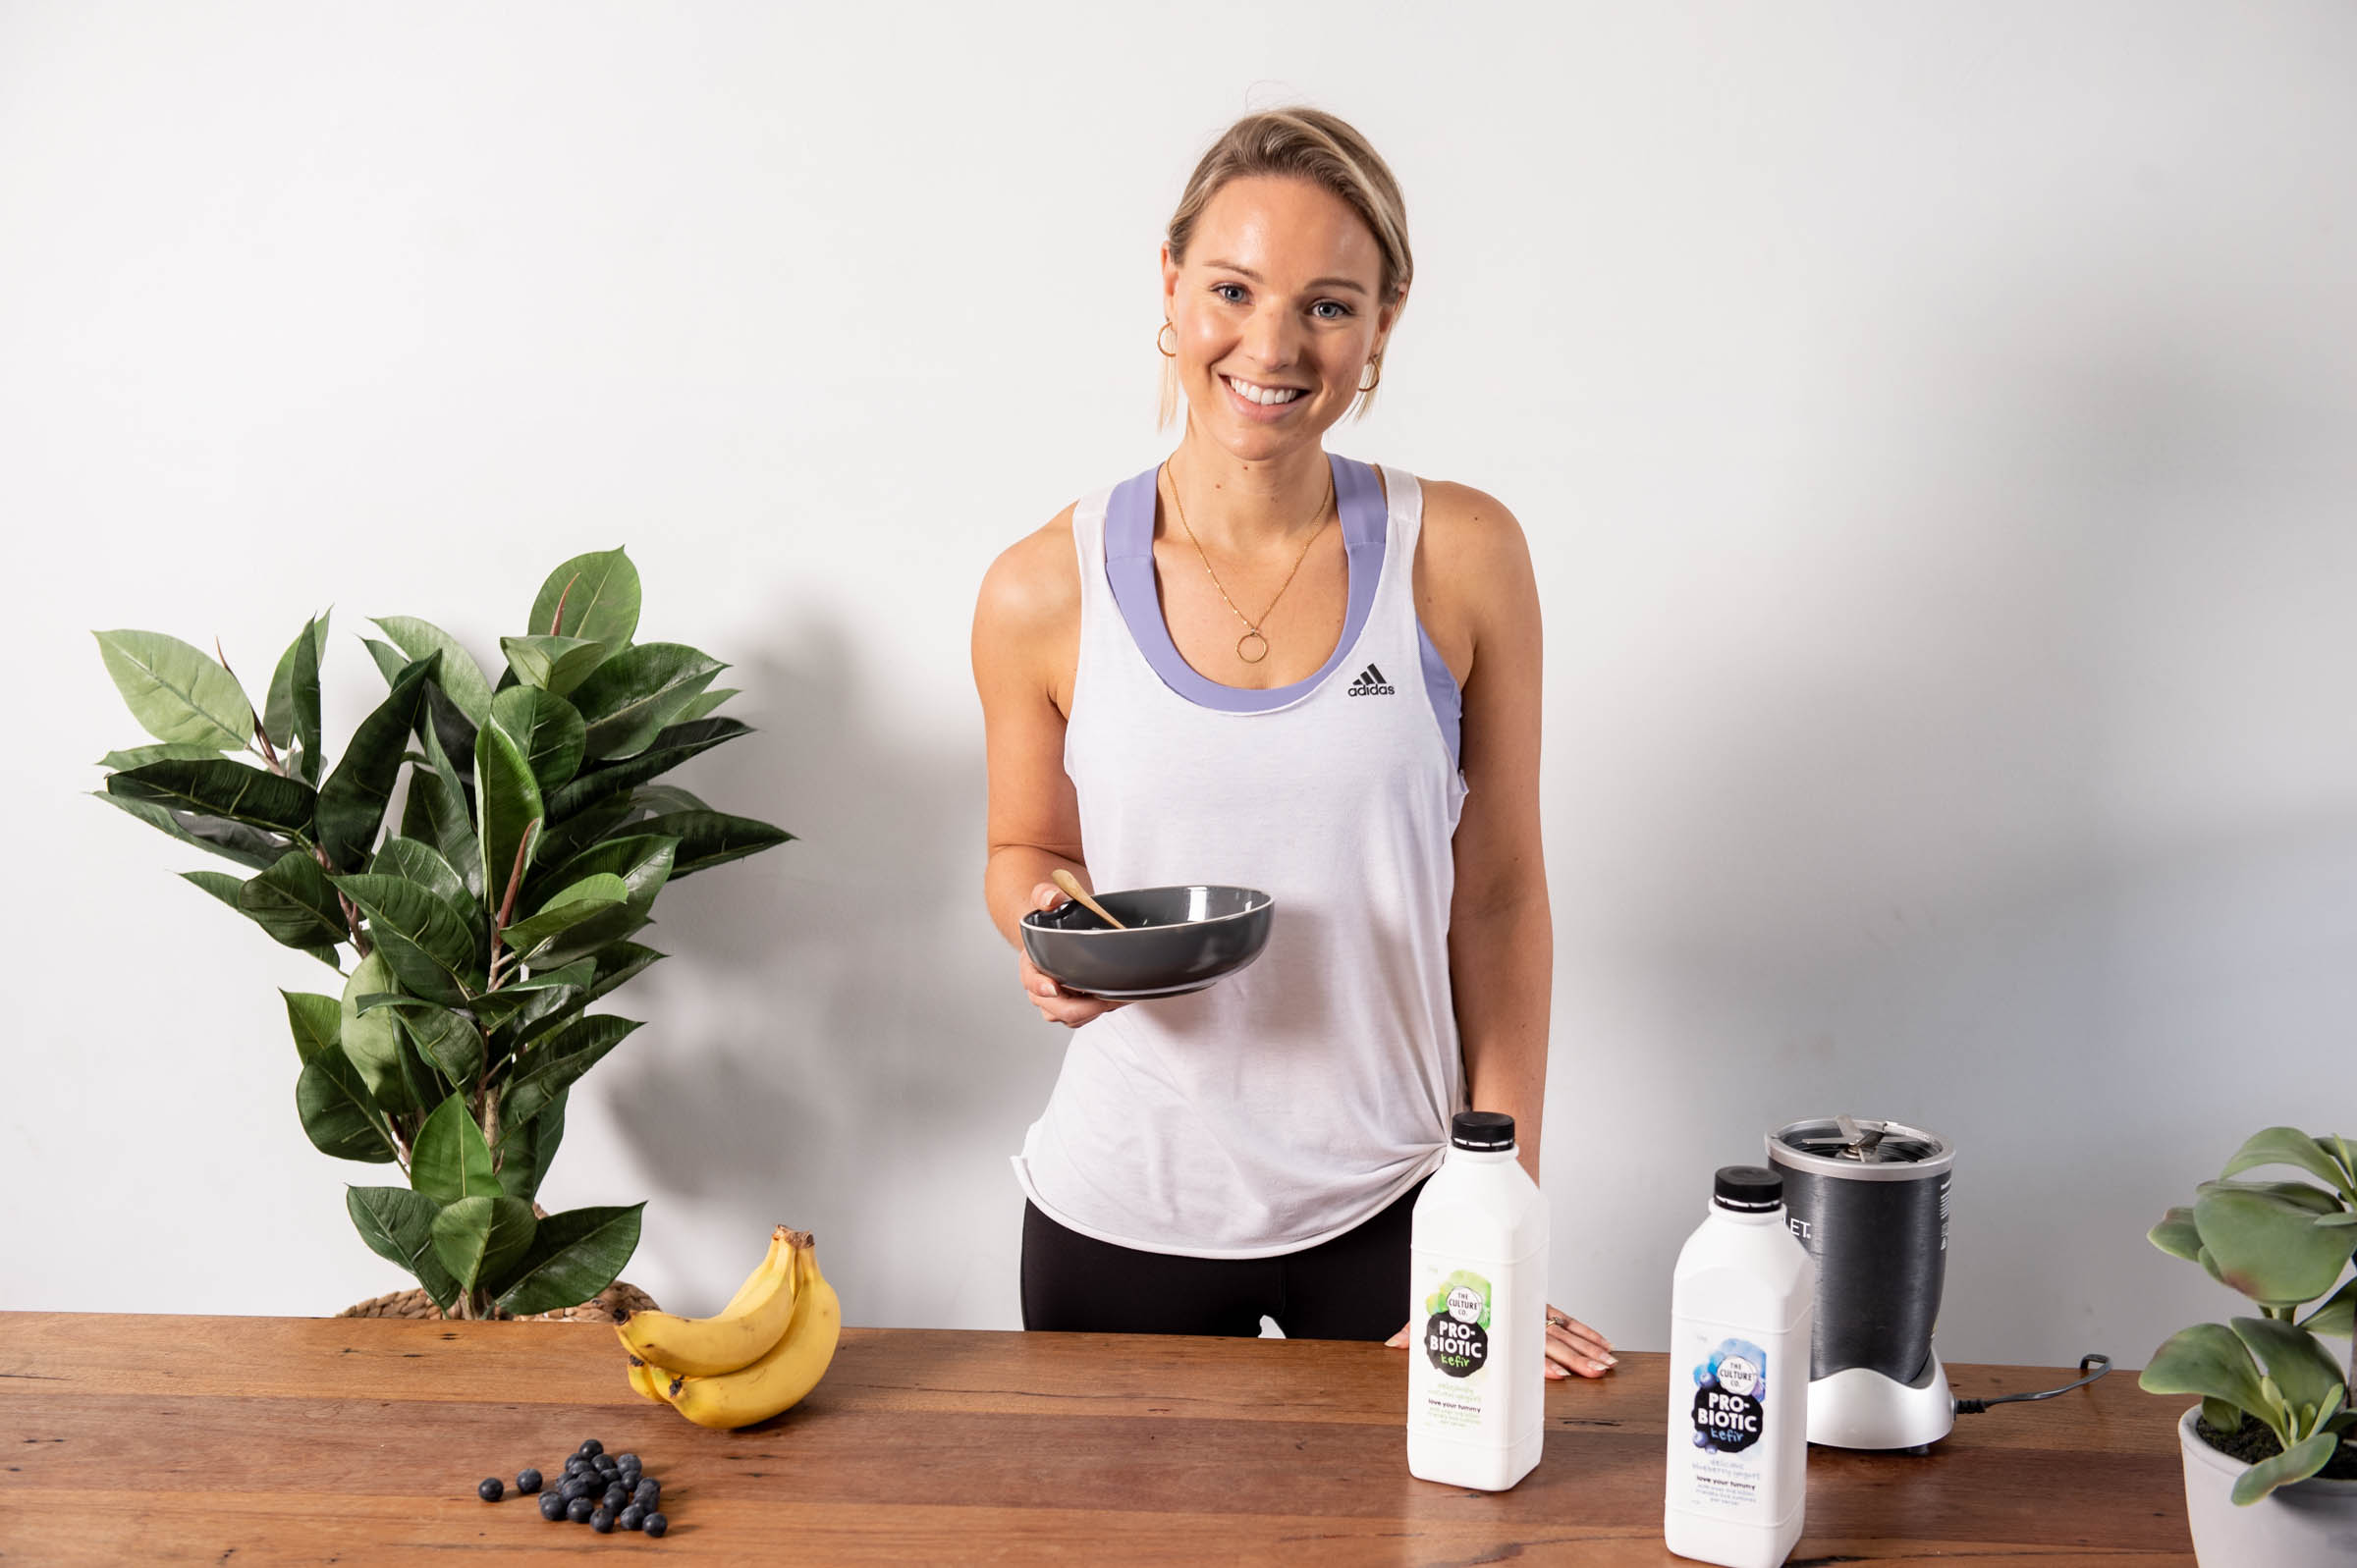 The Culture Co - Steph is the Official Nutritionist for The Culture Co  to help bring awareness, education and inspiration for their Probiotic Kefir range. Steph creates recipes, articles, educational videos and is hosting their Oh My Gut 28 Day challenge.